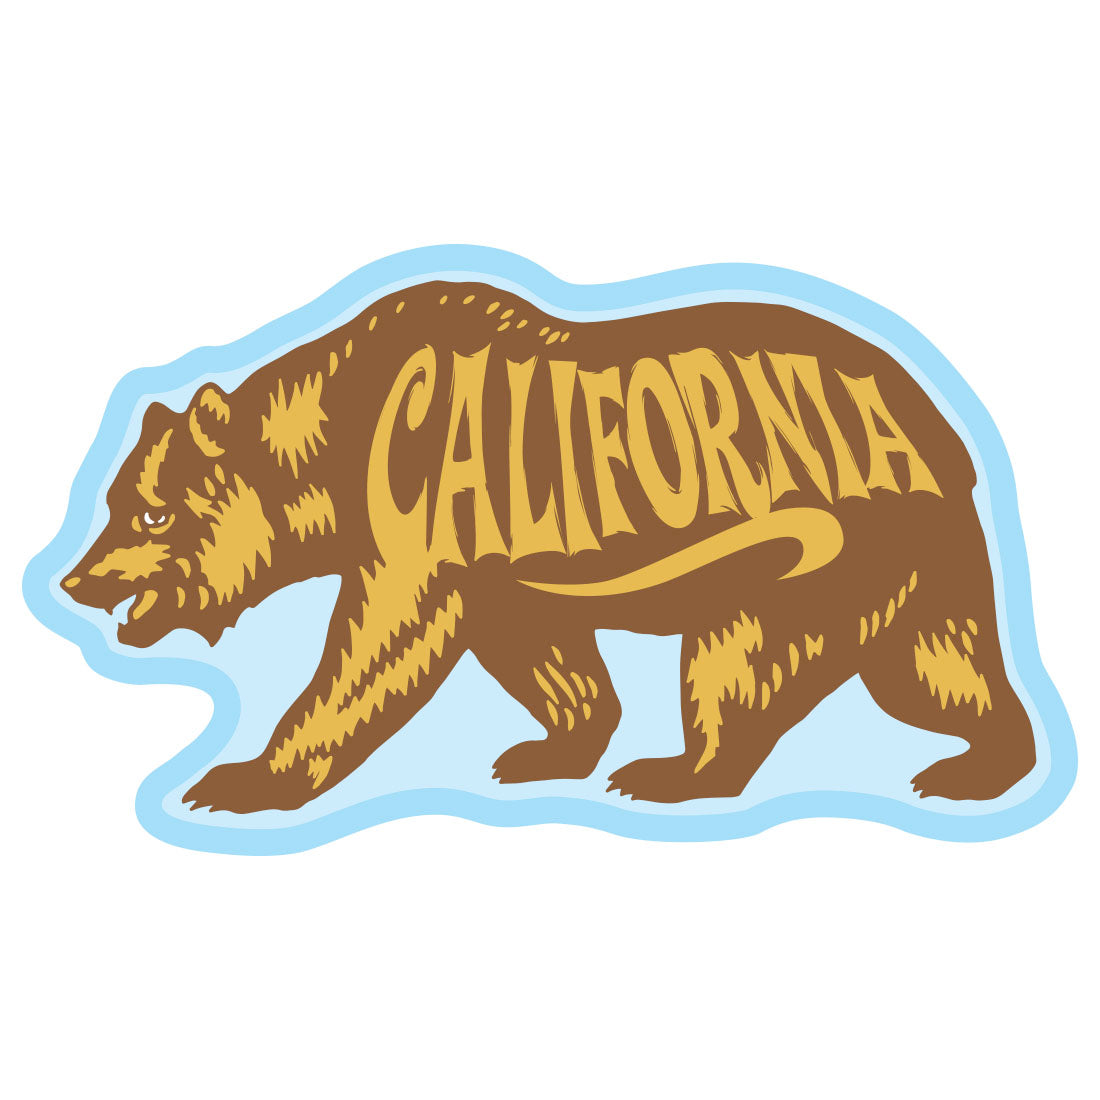 California Bear Sticker by Tim Ward